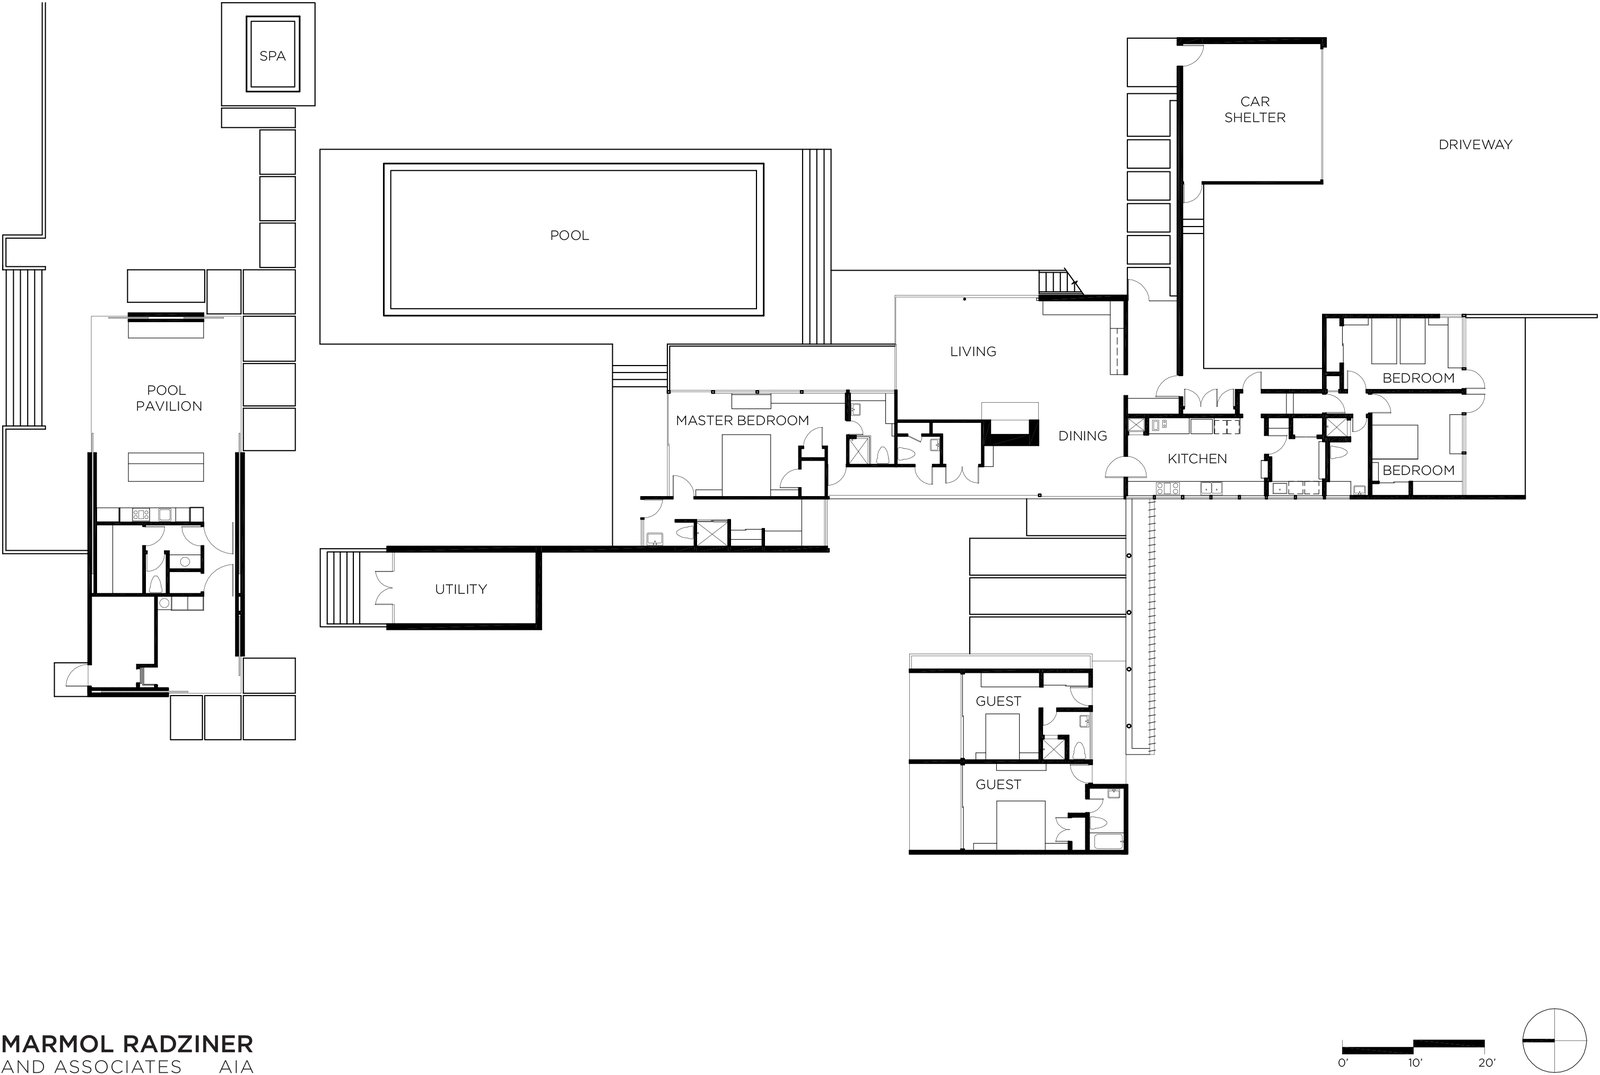 neutra - Dwell on the chadwick floor plans, side breeze floor plans, kaufman house diagrams, palm springs house plans,